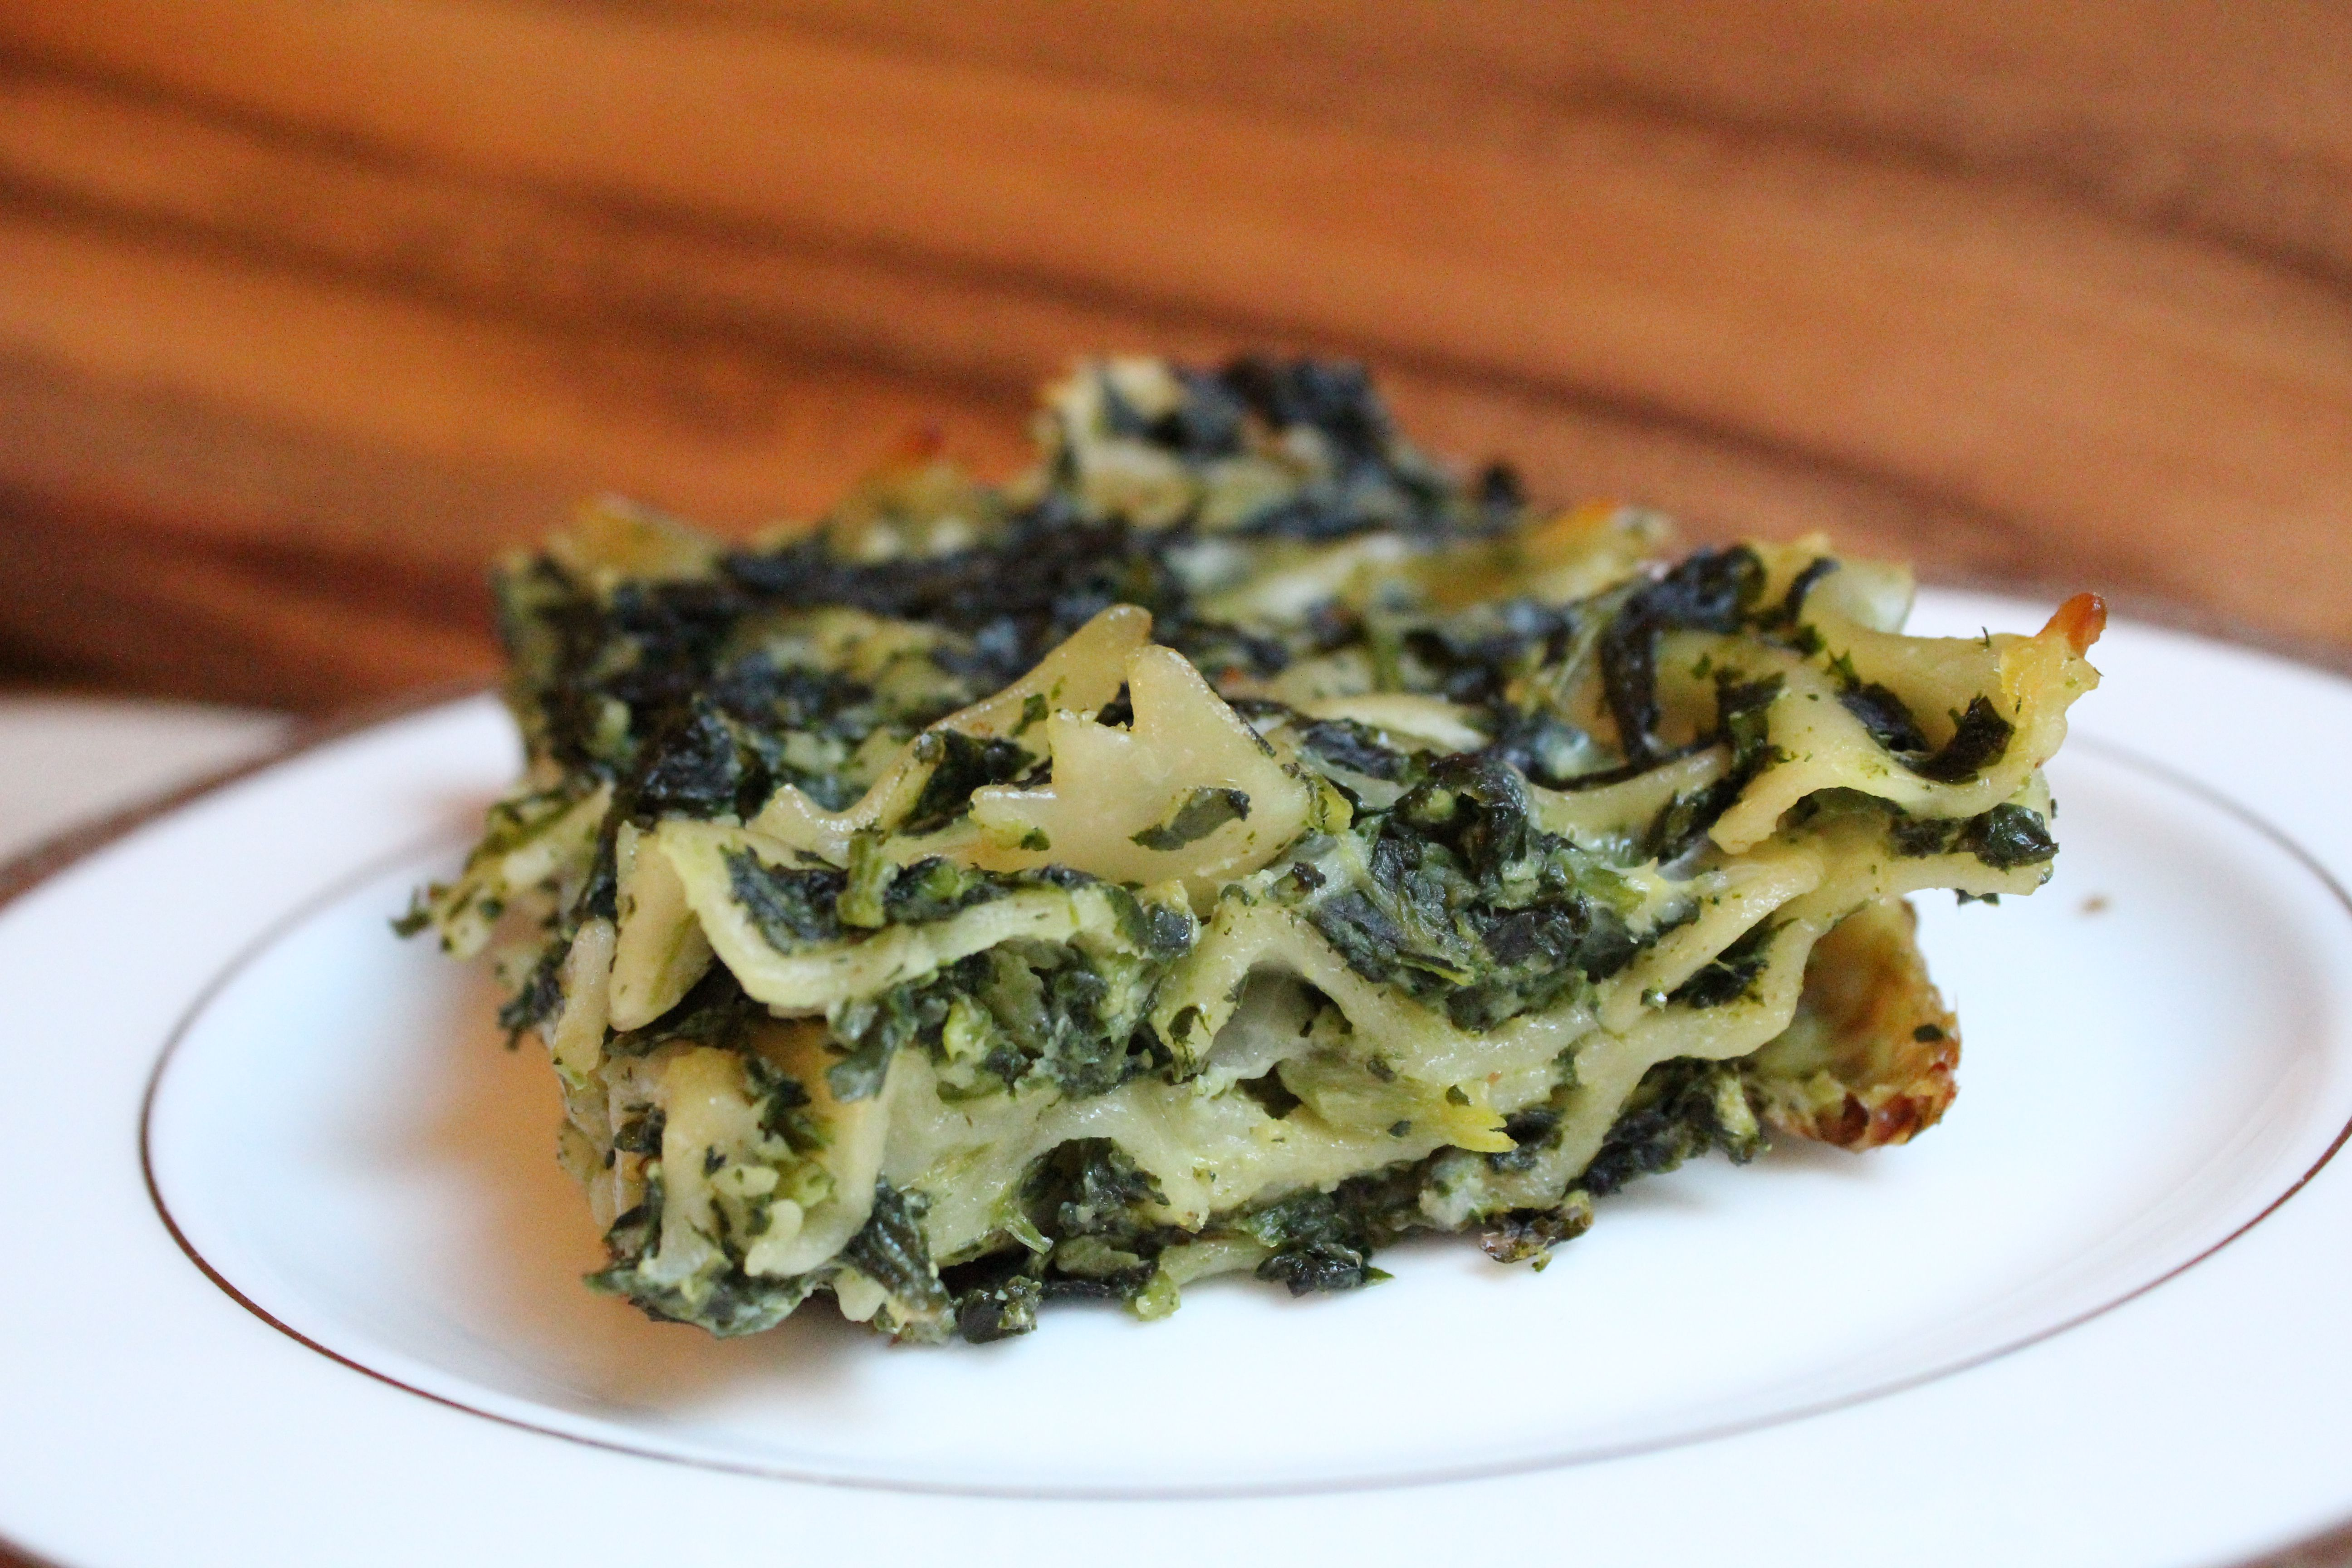 A slice of spinach noodle kugel on a plate